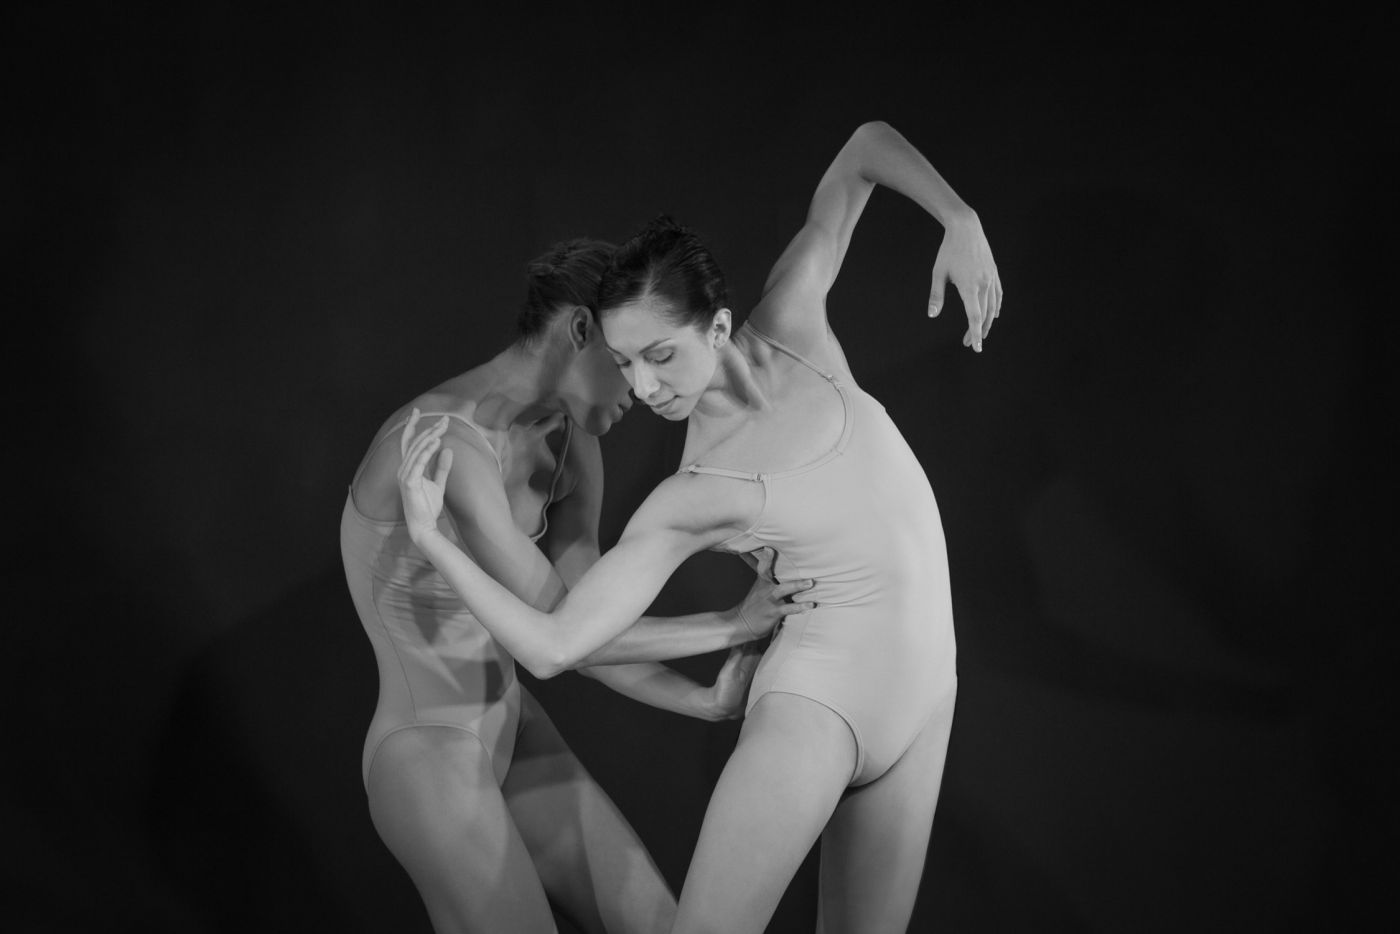 Black and white studio ballet photography